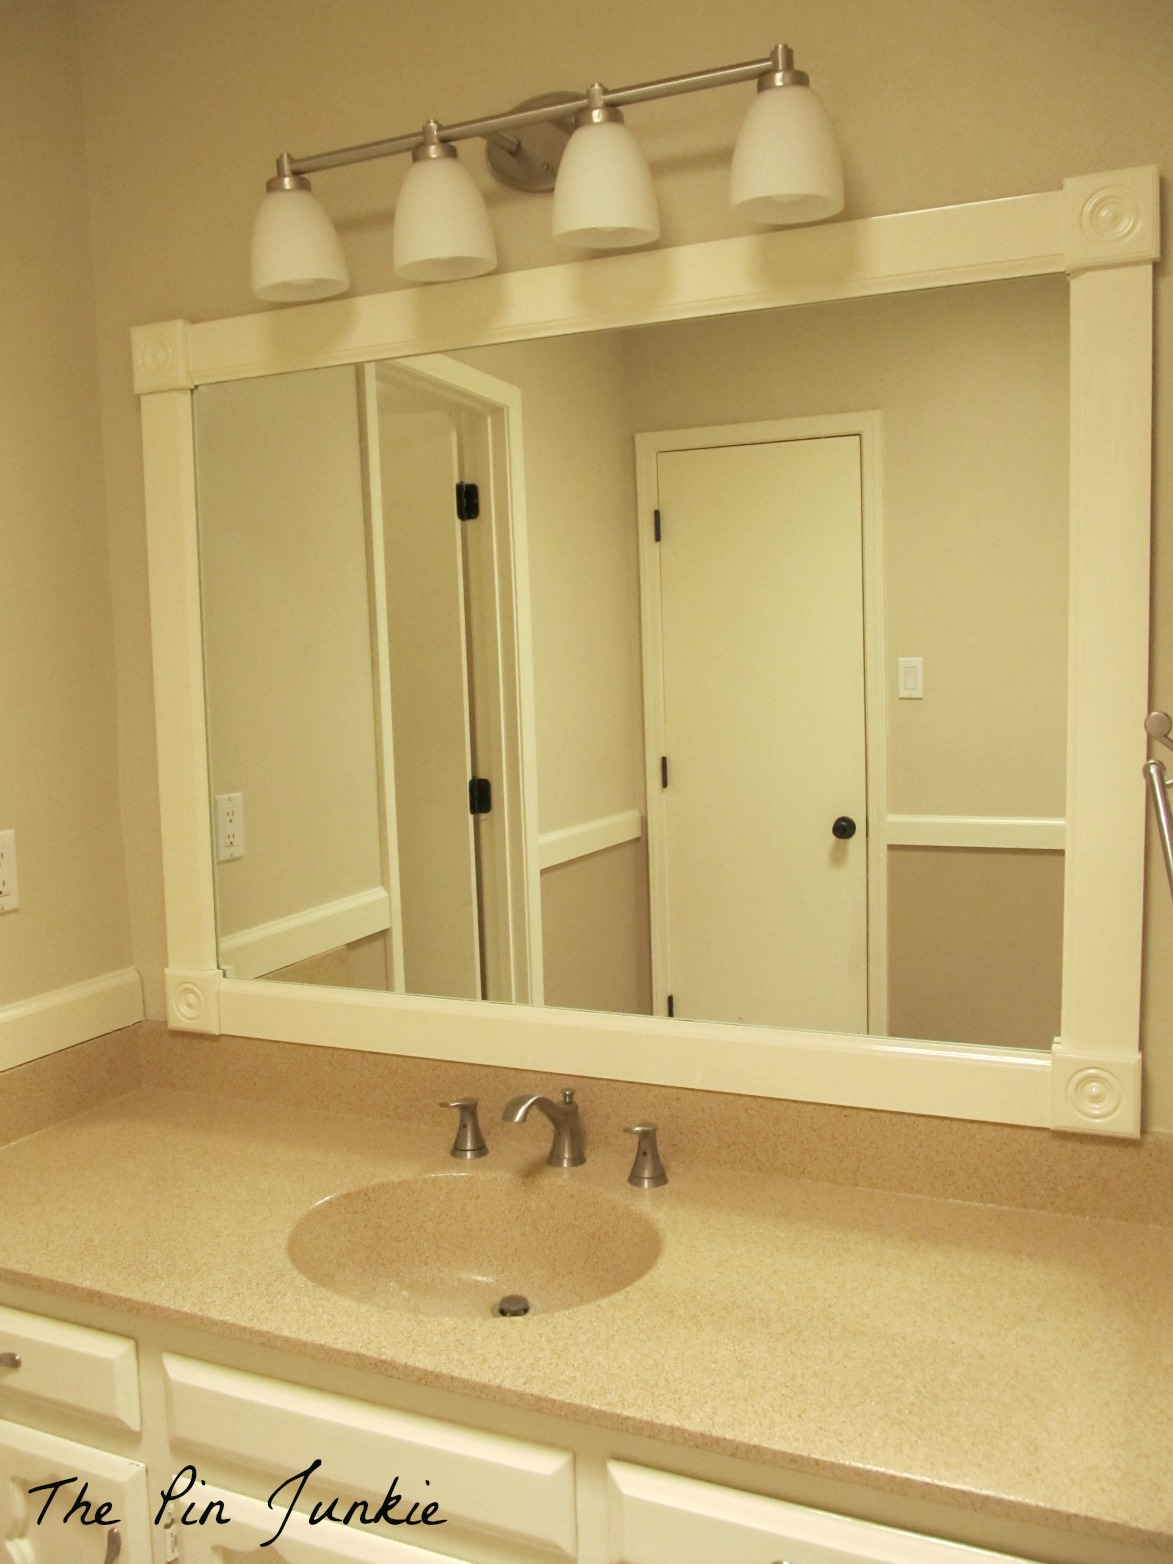 Framing Bathroom Wall Mirror. mirror framed wall art